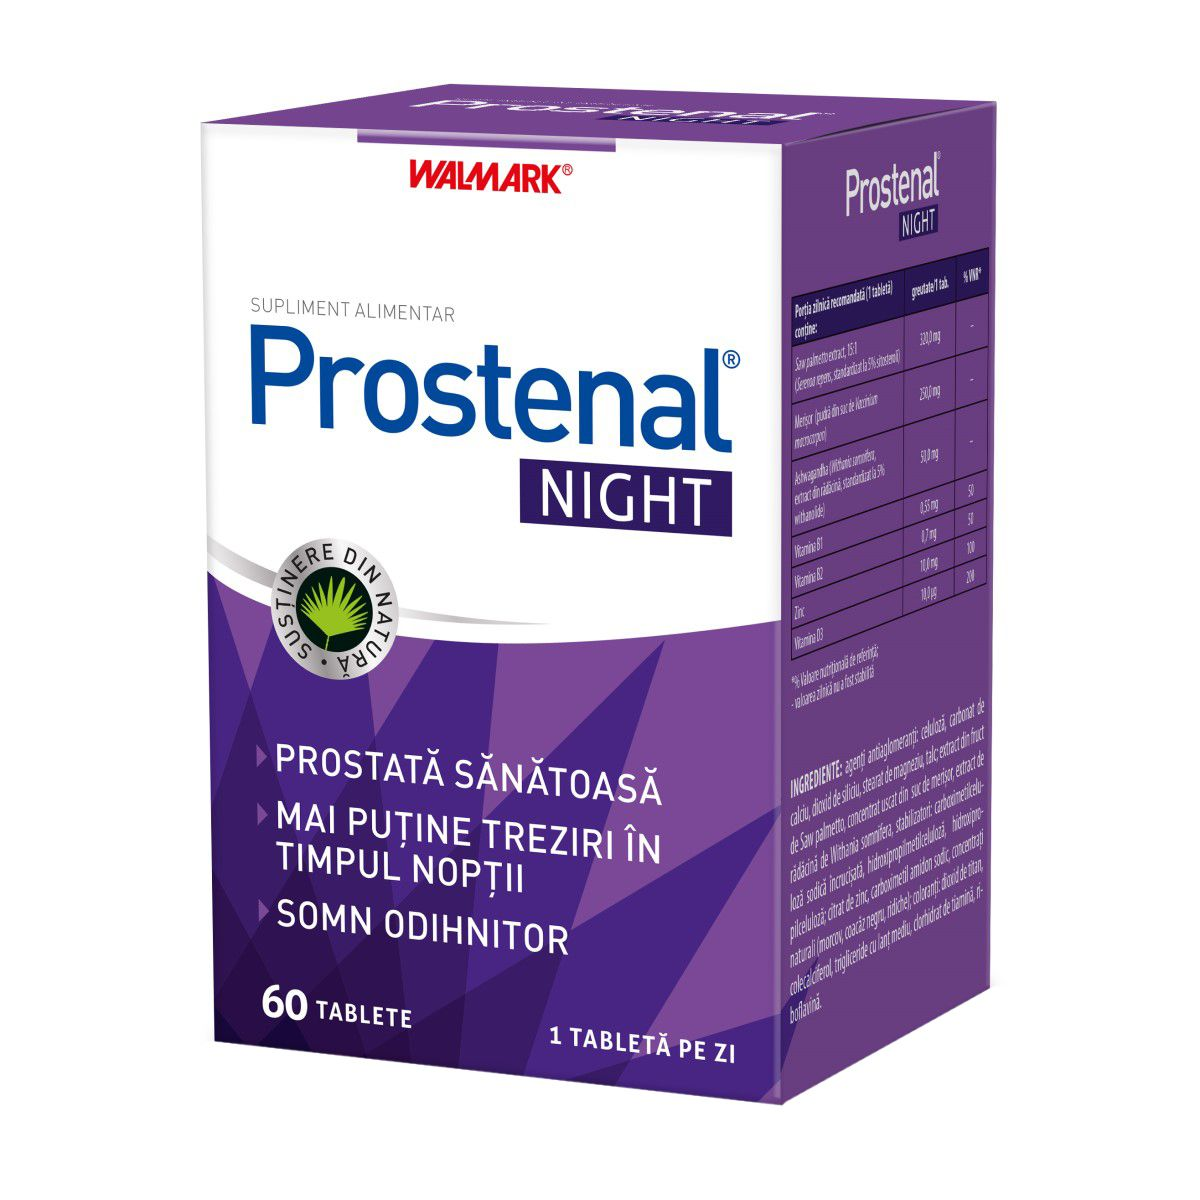 Prostenal Night, 60 tablete, Walmark drmax poza